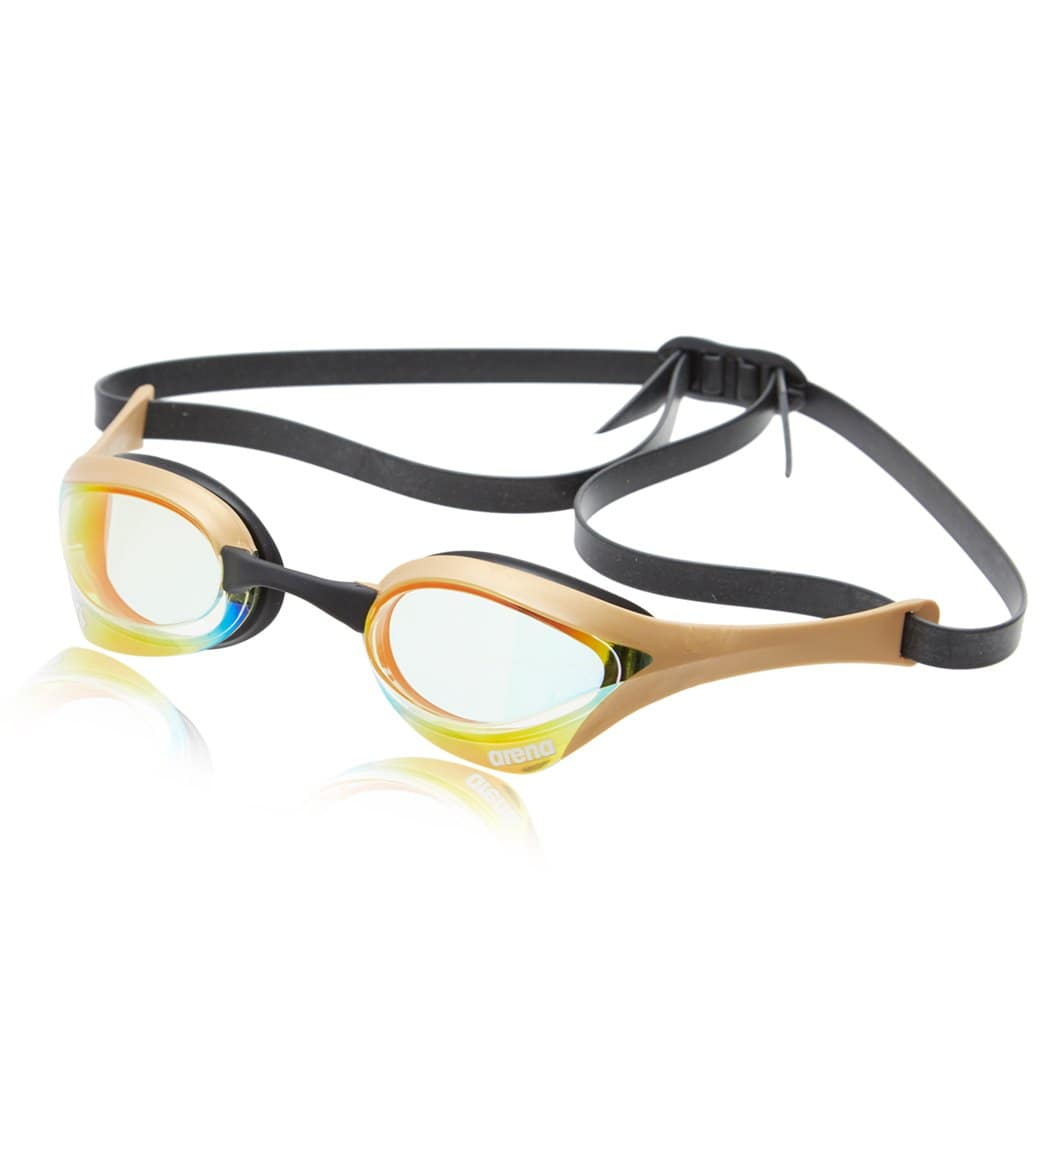 Arena Cobra Ultra Swipe Mirrored Goggle